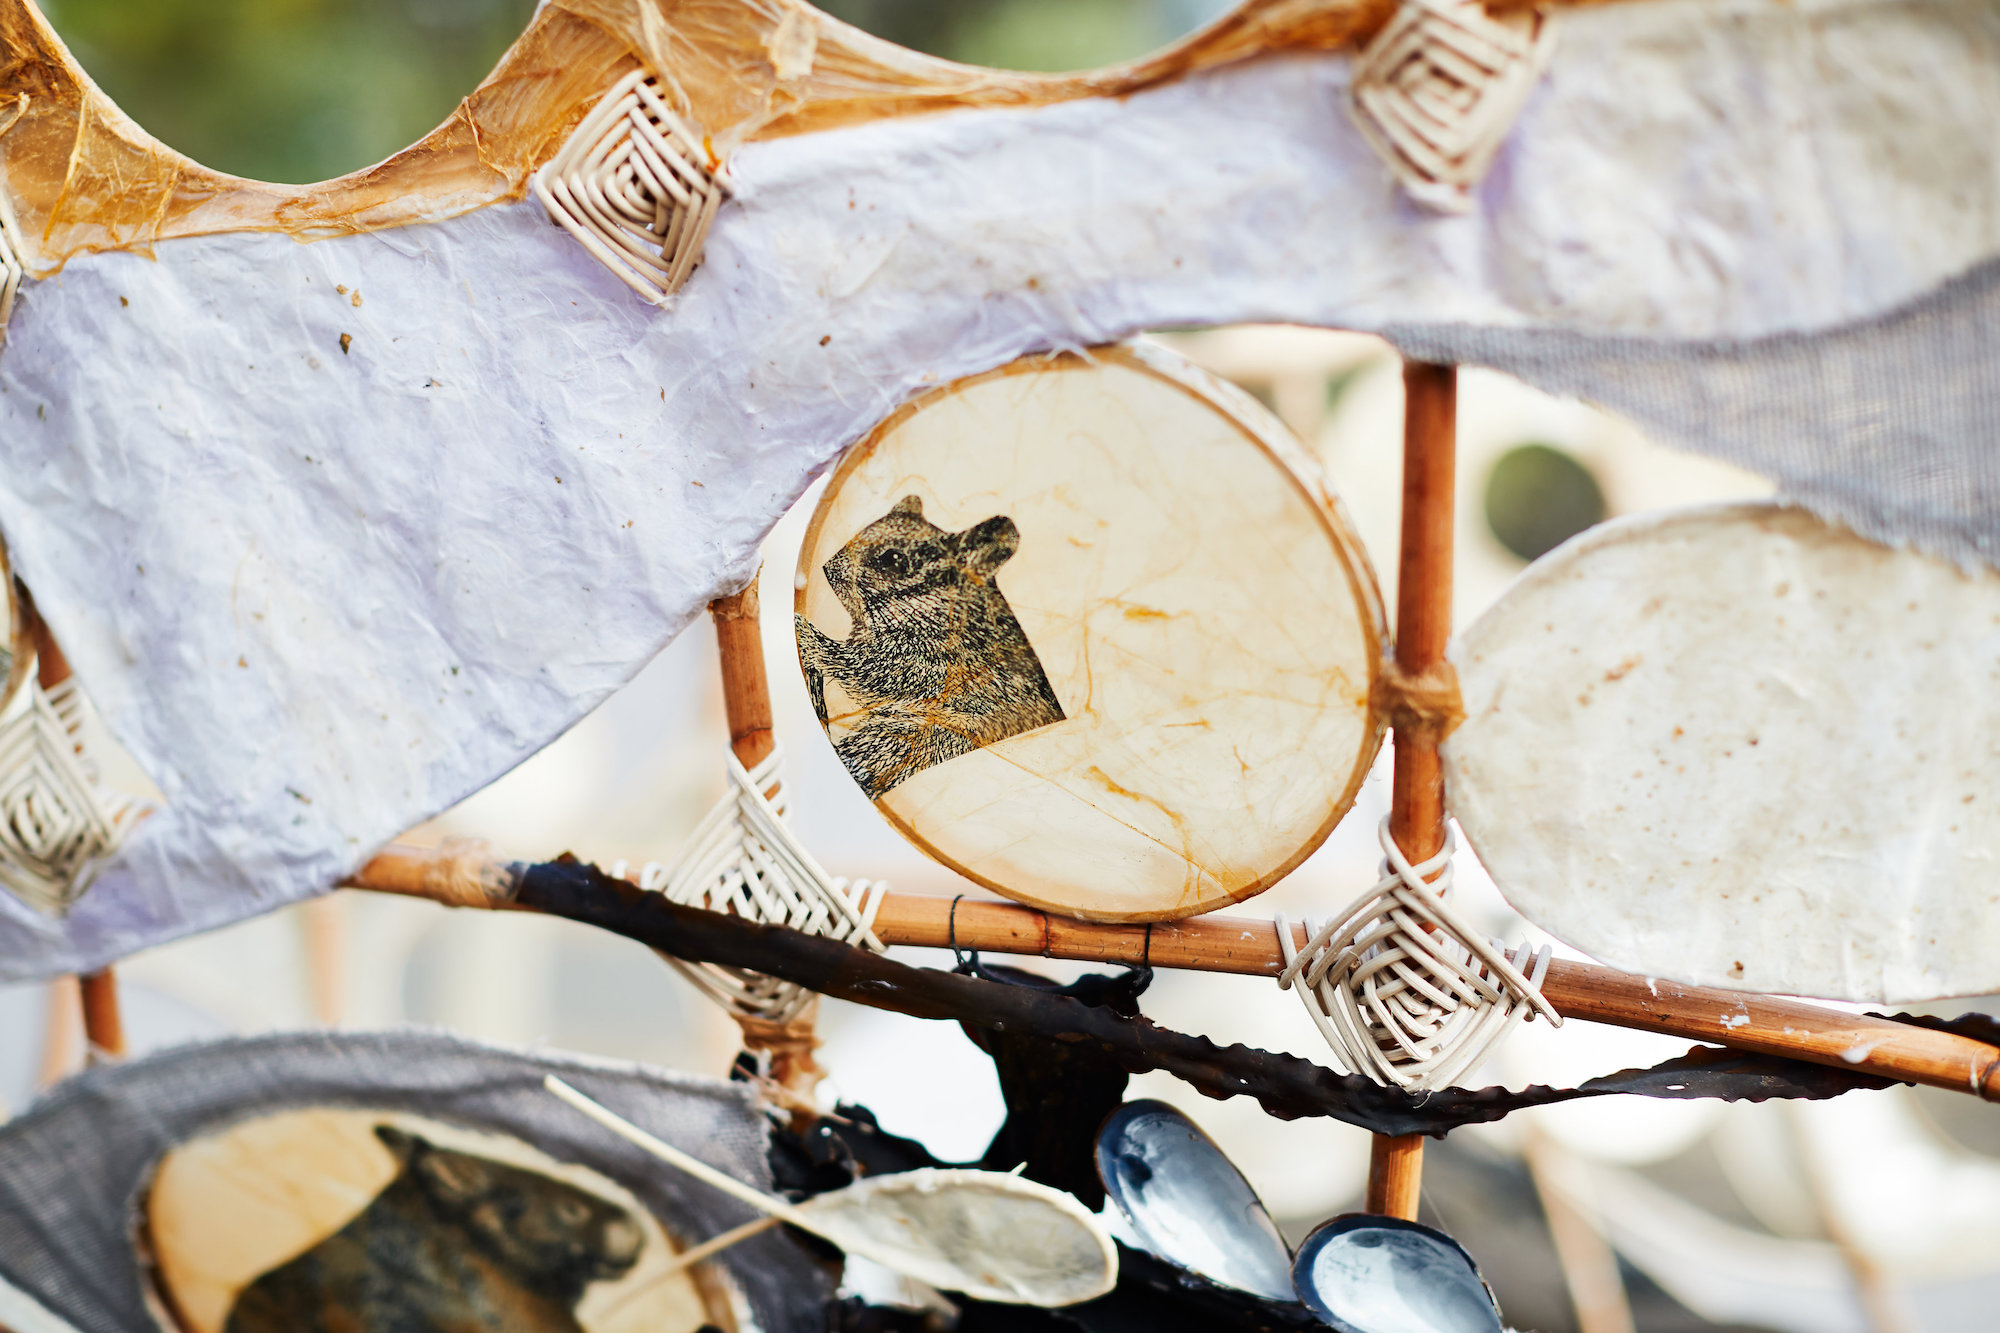 Detail of Canoe; Artists: Leslie Pearson and Kerrie Bedson; Photographer: Jarrah Lynch